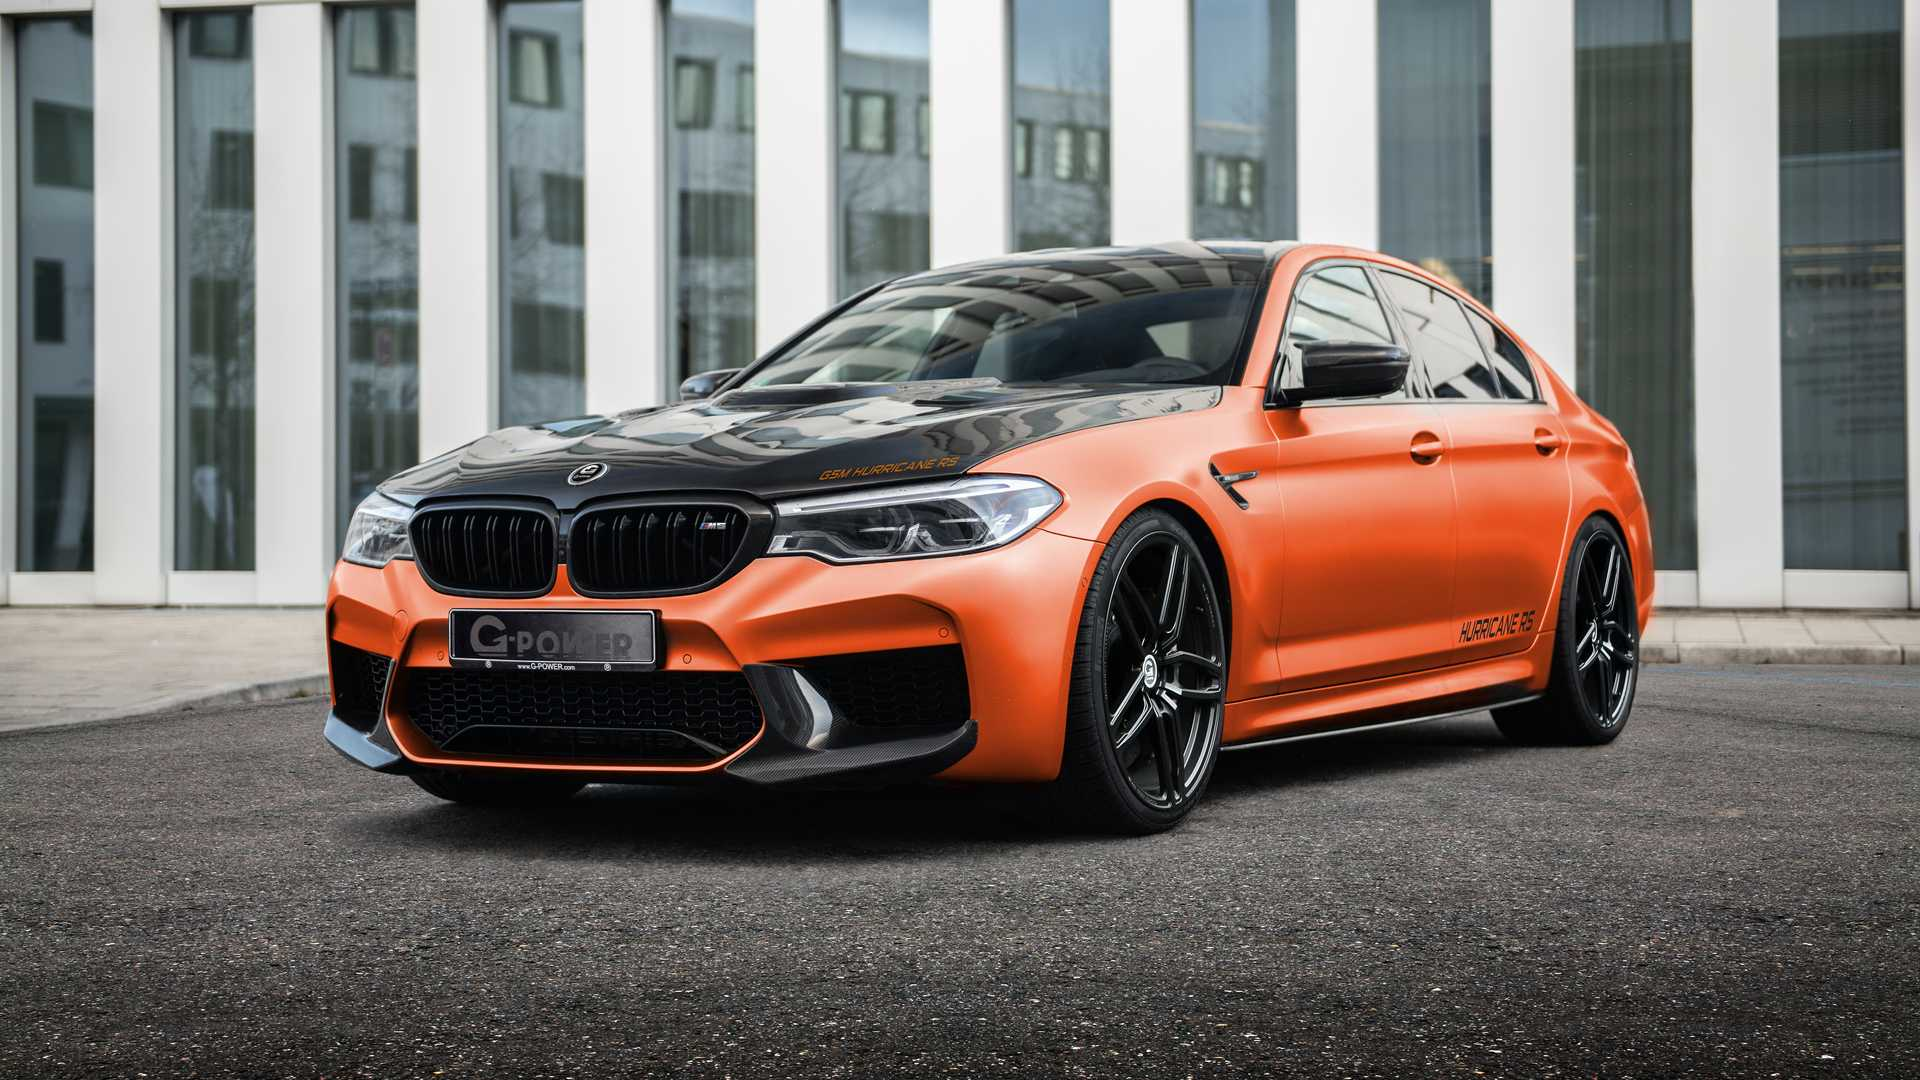 G-Power introduces 'Hurricane RS', a BMW M5 with 829 HP ...